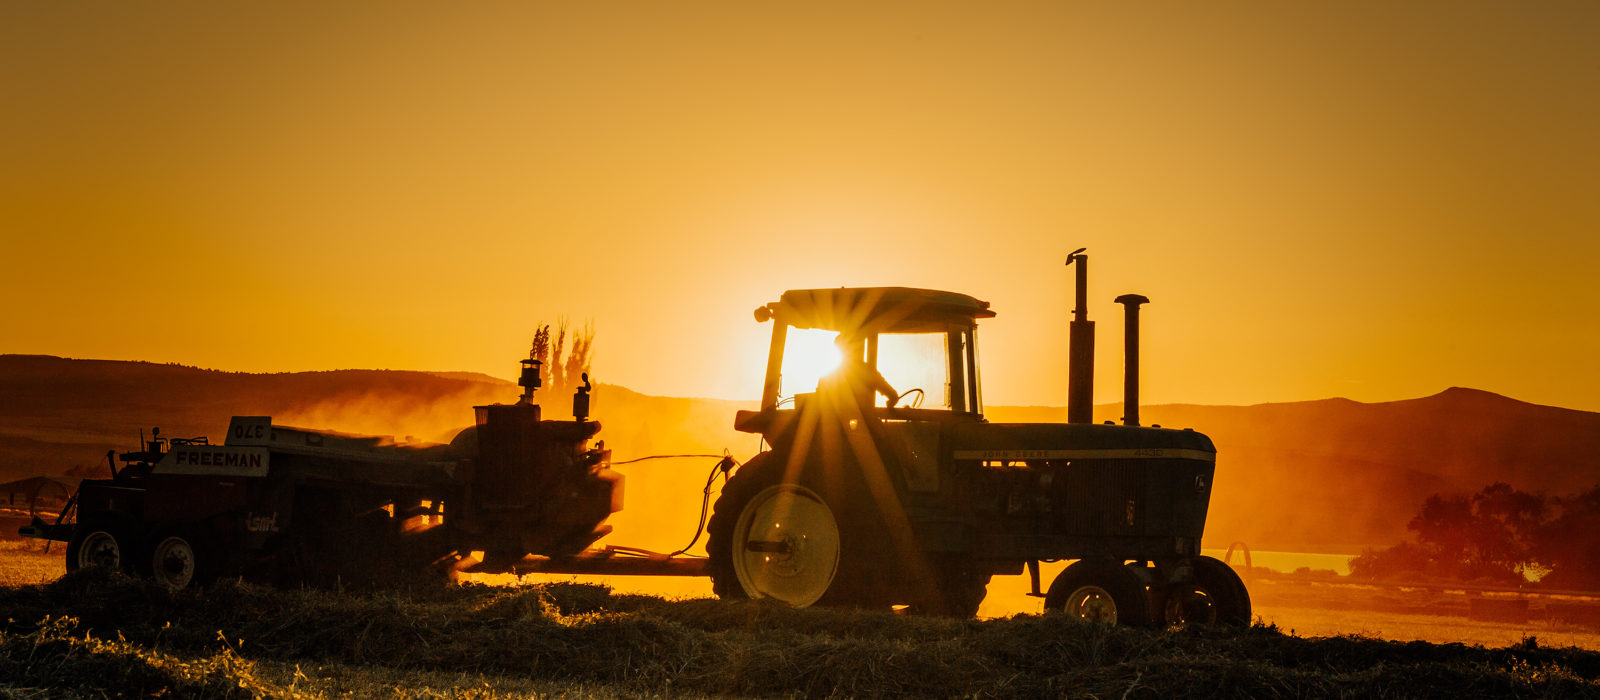 harvesting equipment in alfalfa field at sunset